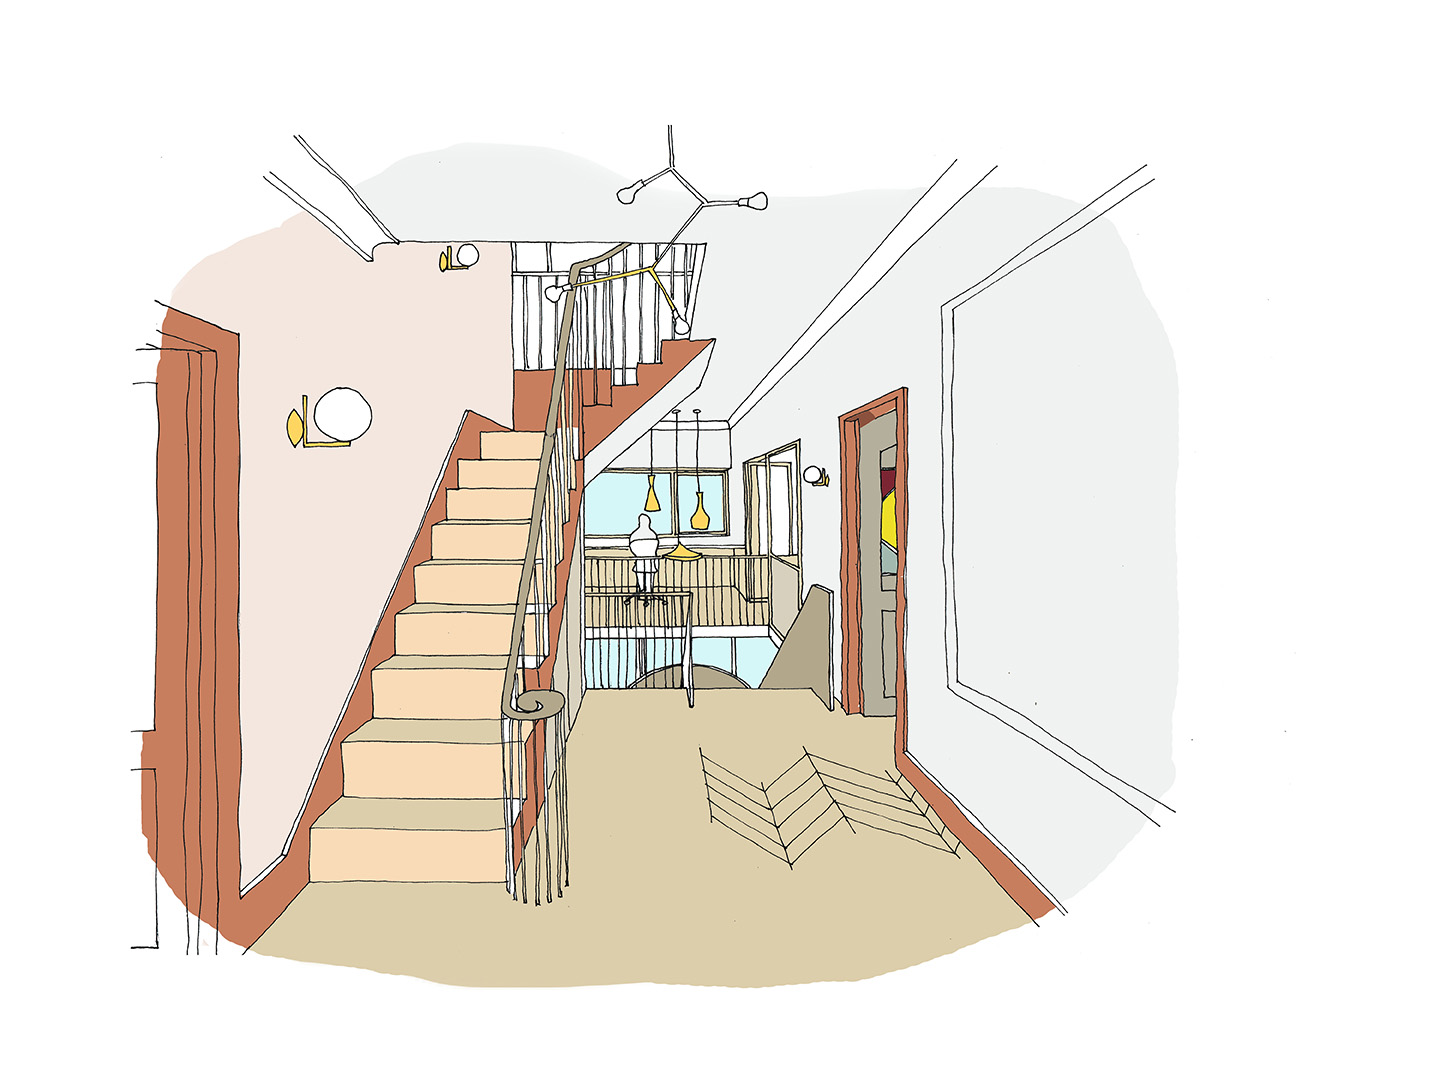 Full refurbishment including a new curved staircase which follows the three floors within the double dwelling house.